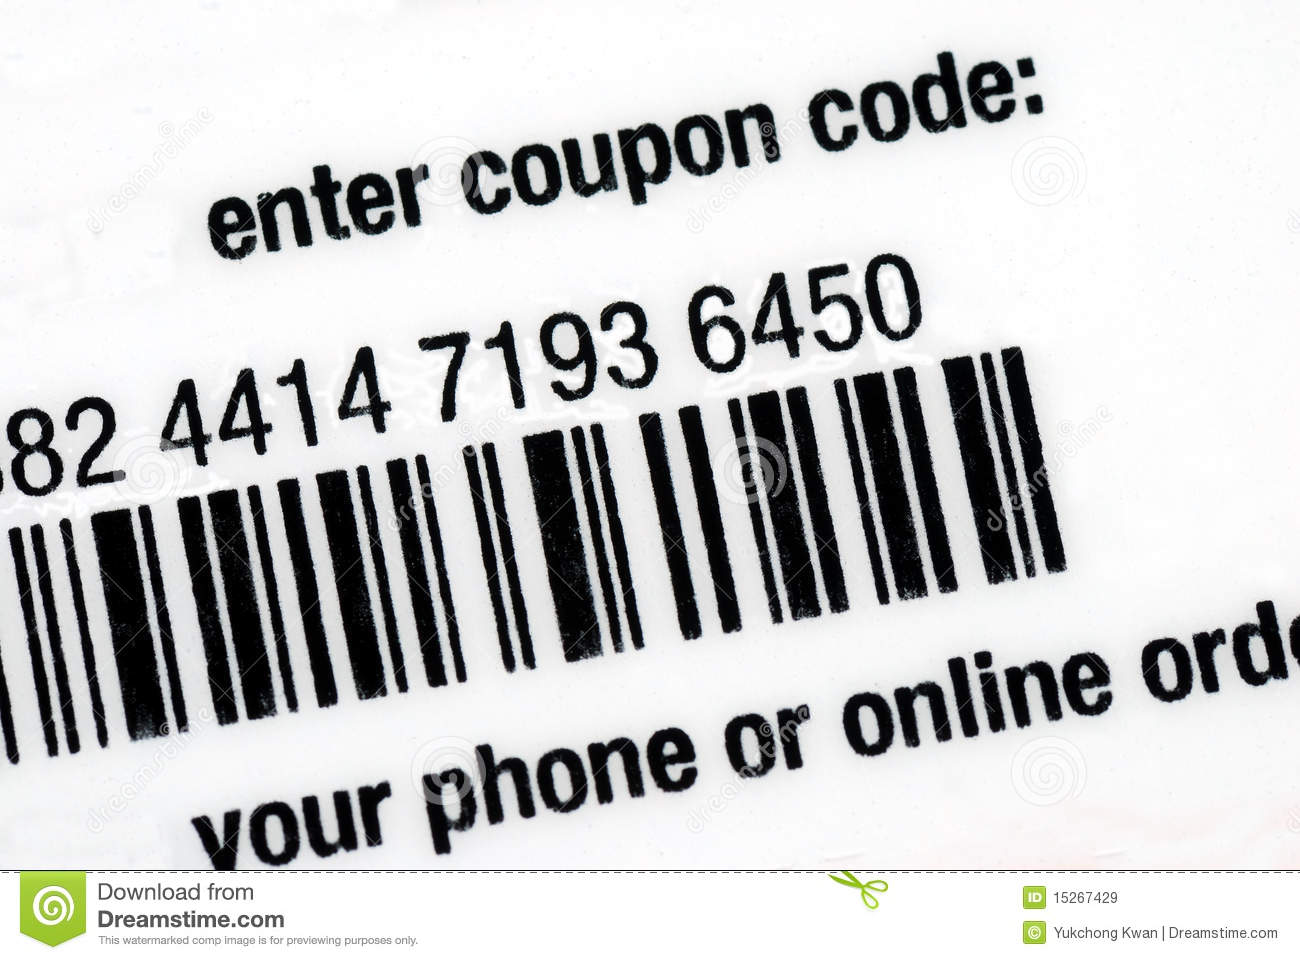 Hoyt store coupon code